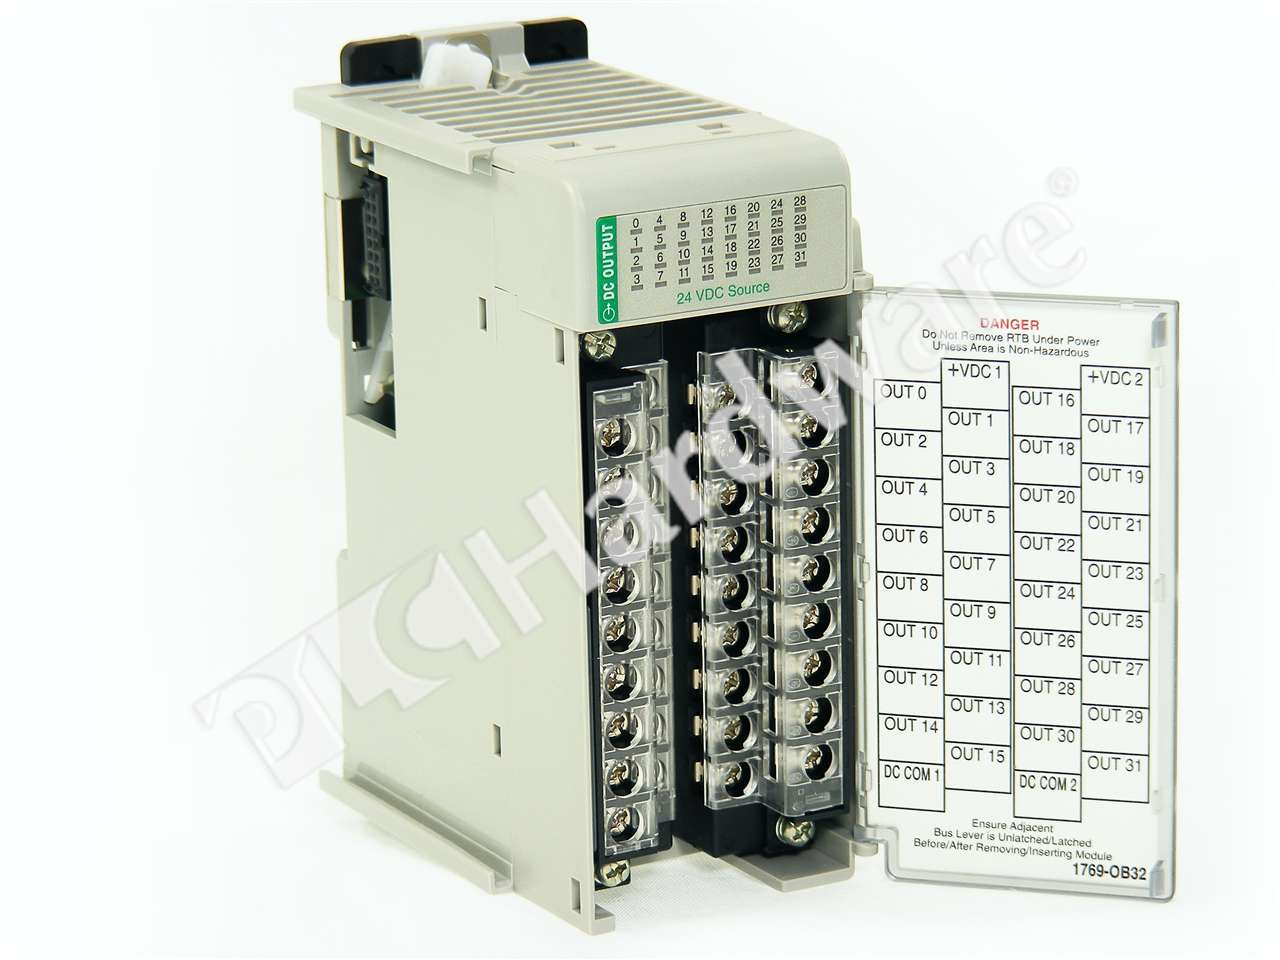 RA 1769 ob32 a NSO_3_10_06_08_22_09_b plc hardware allen bradley 1769 ob32 series a, used in a plch 1769 if4 wiring diagram at mifinder.co